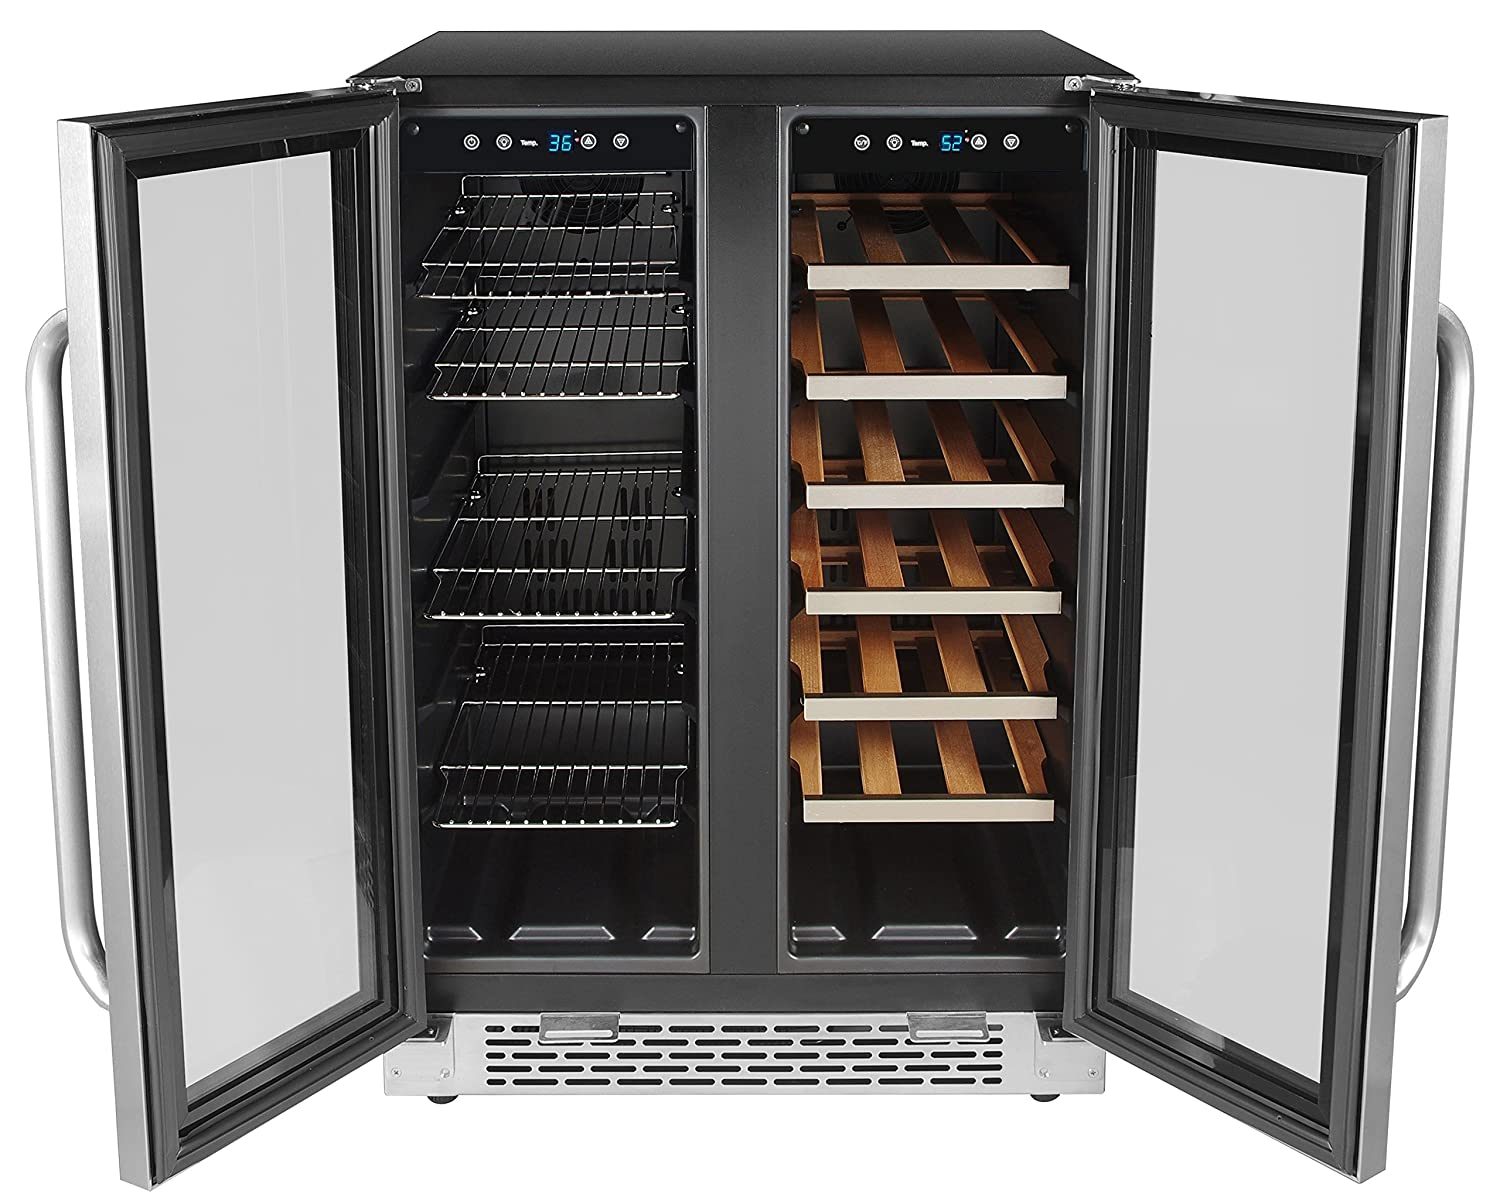 Whynter Cooler BWB-2060FDS 24 Built-in French Door Dual Zone 20 Bottle Wine Refrigerator 60 Can Beverage Center, Stainless Steel, One Size,